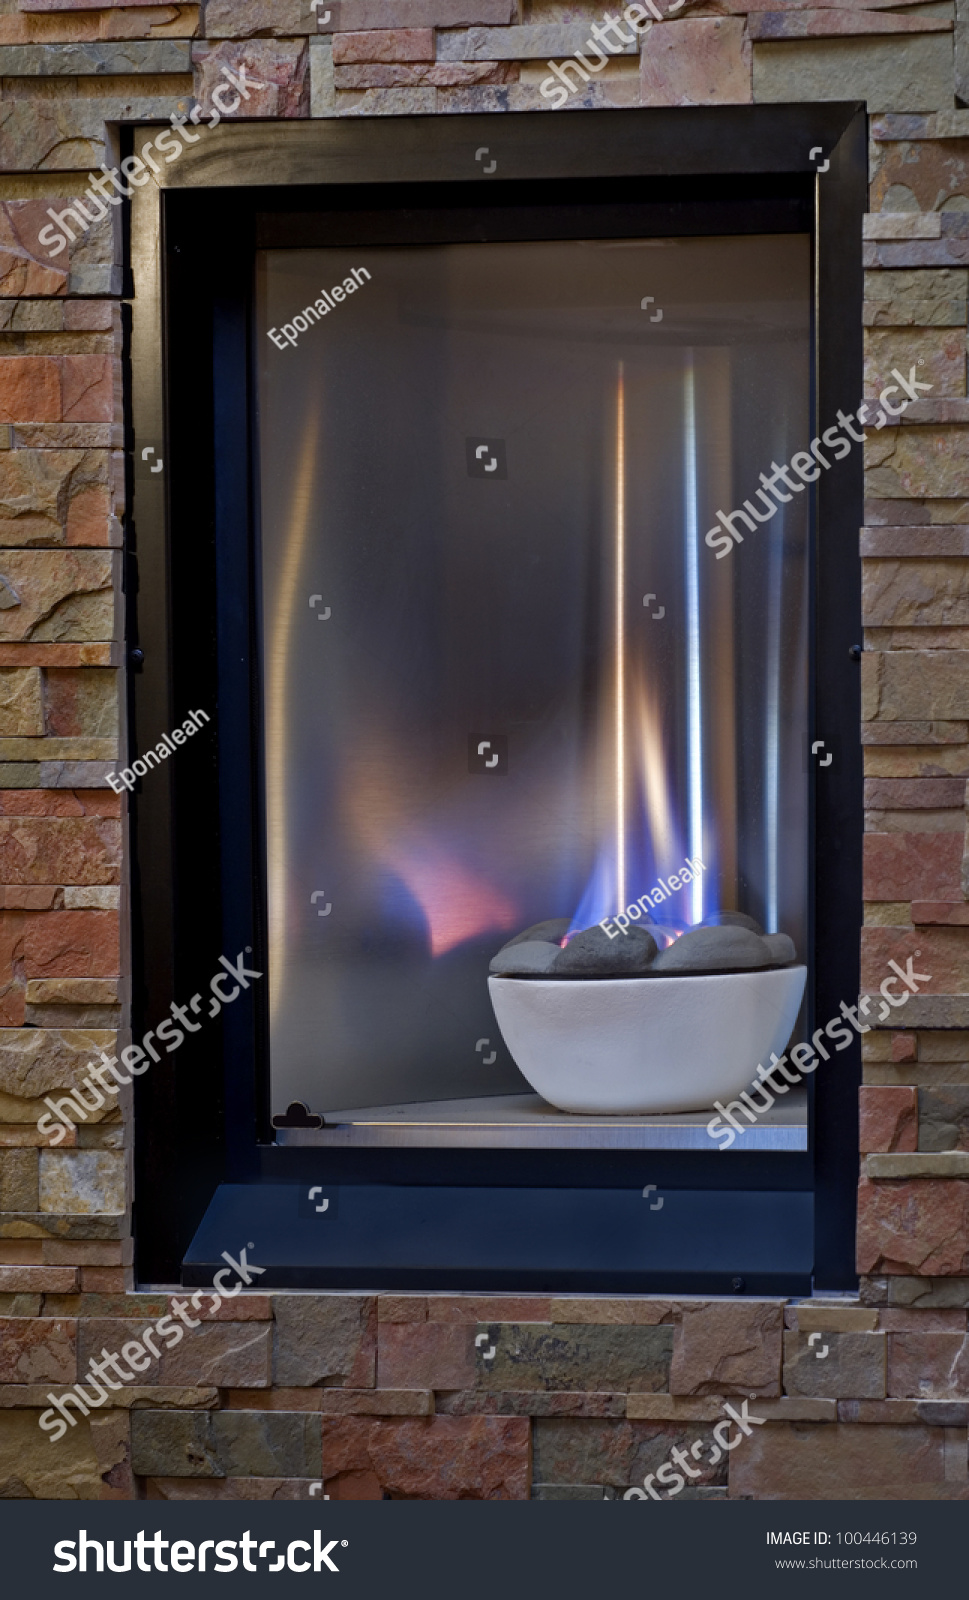 A Cozy Gas Fireplace With Blue And Yellow Flames Set Into A Warm Flagstone Wall Stock Photo